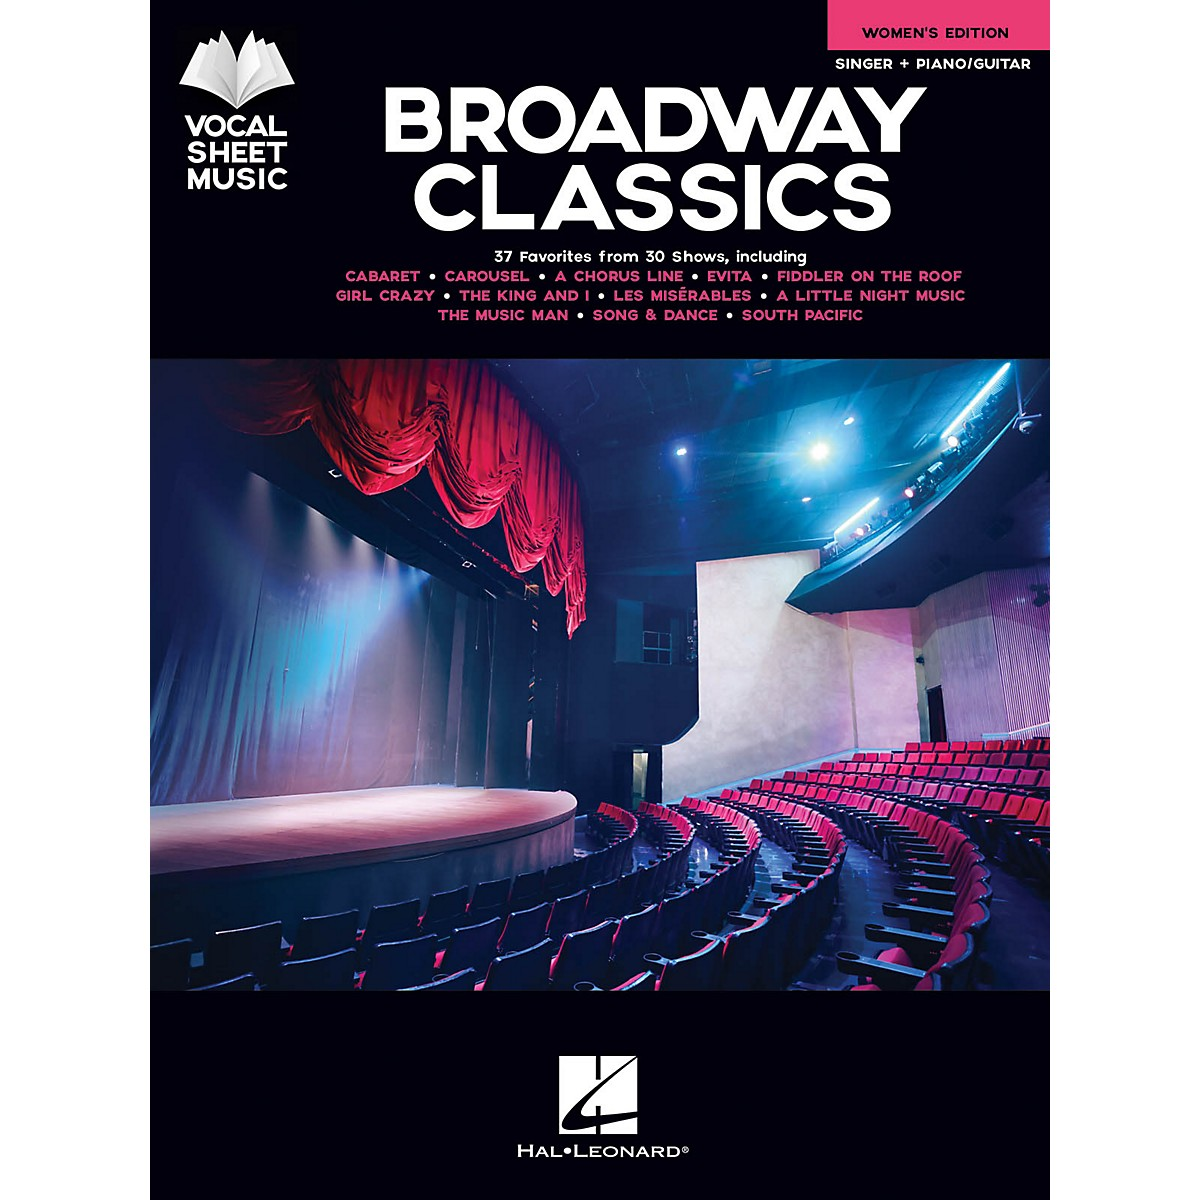 Hal Leonard Broadway Classics - Women's Edition (Singer + Piano/Guitar) Vocal Sheet Series Songbook